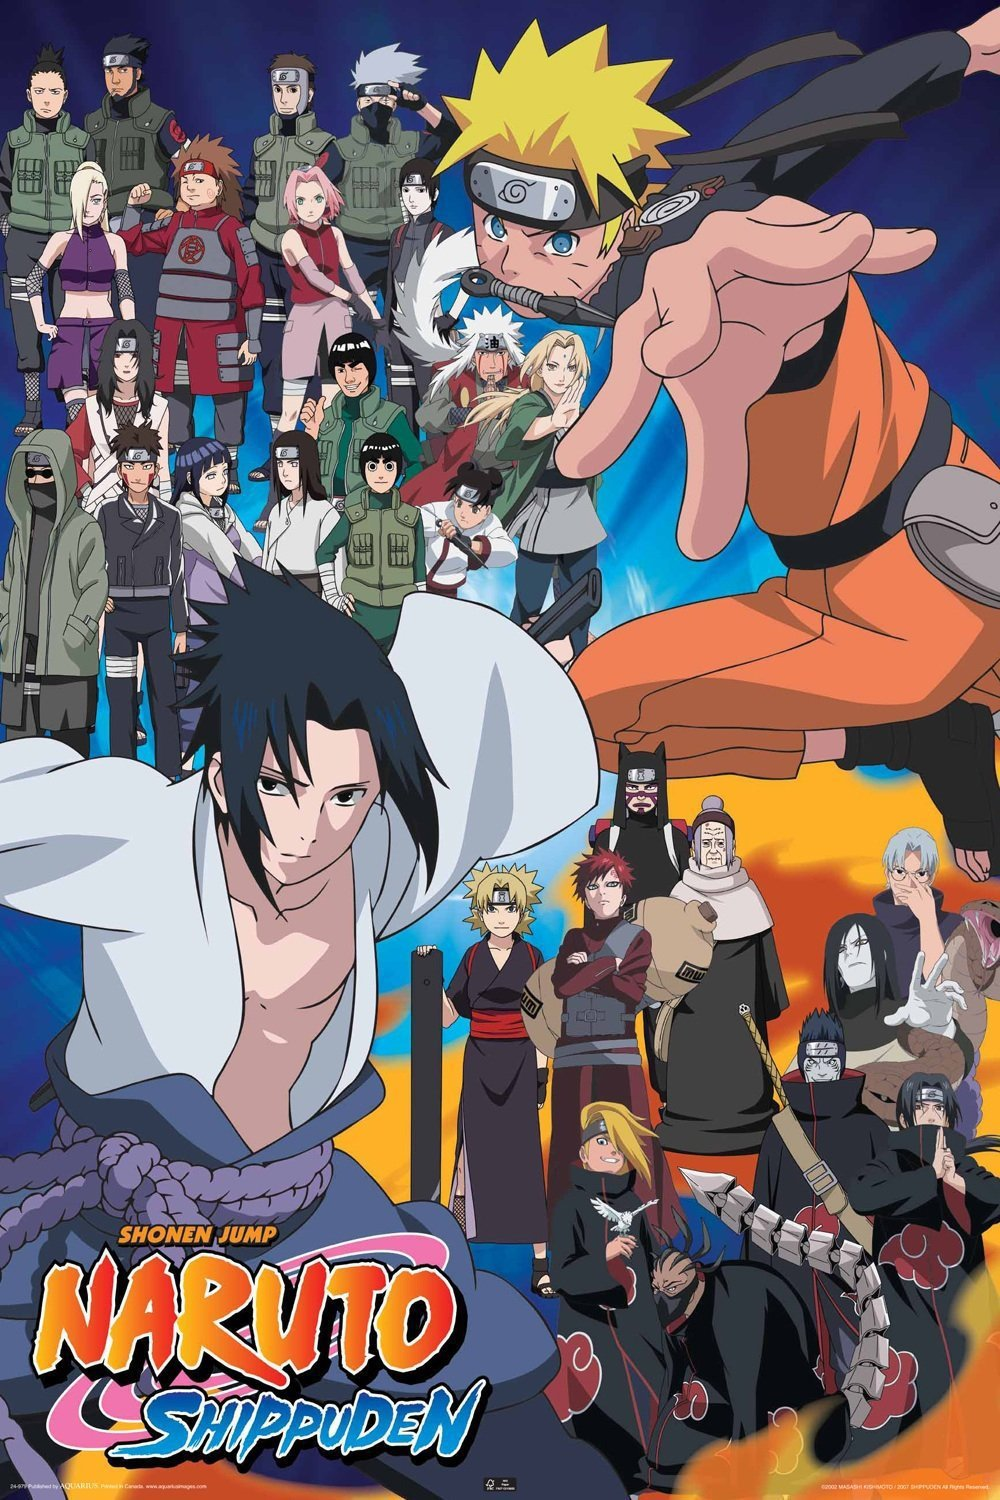 Naruto shippuden project central animes reheart Gallery